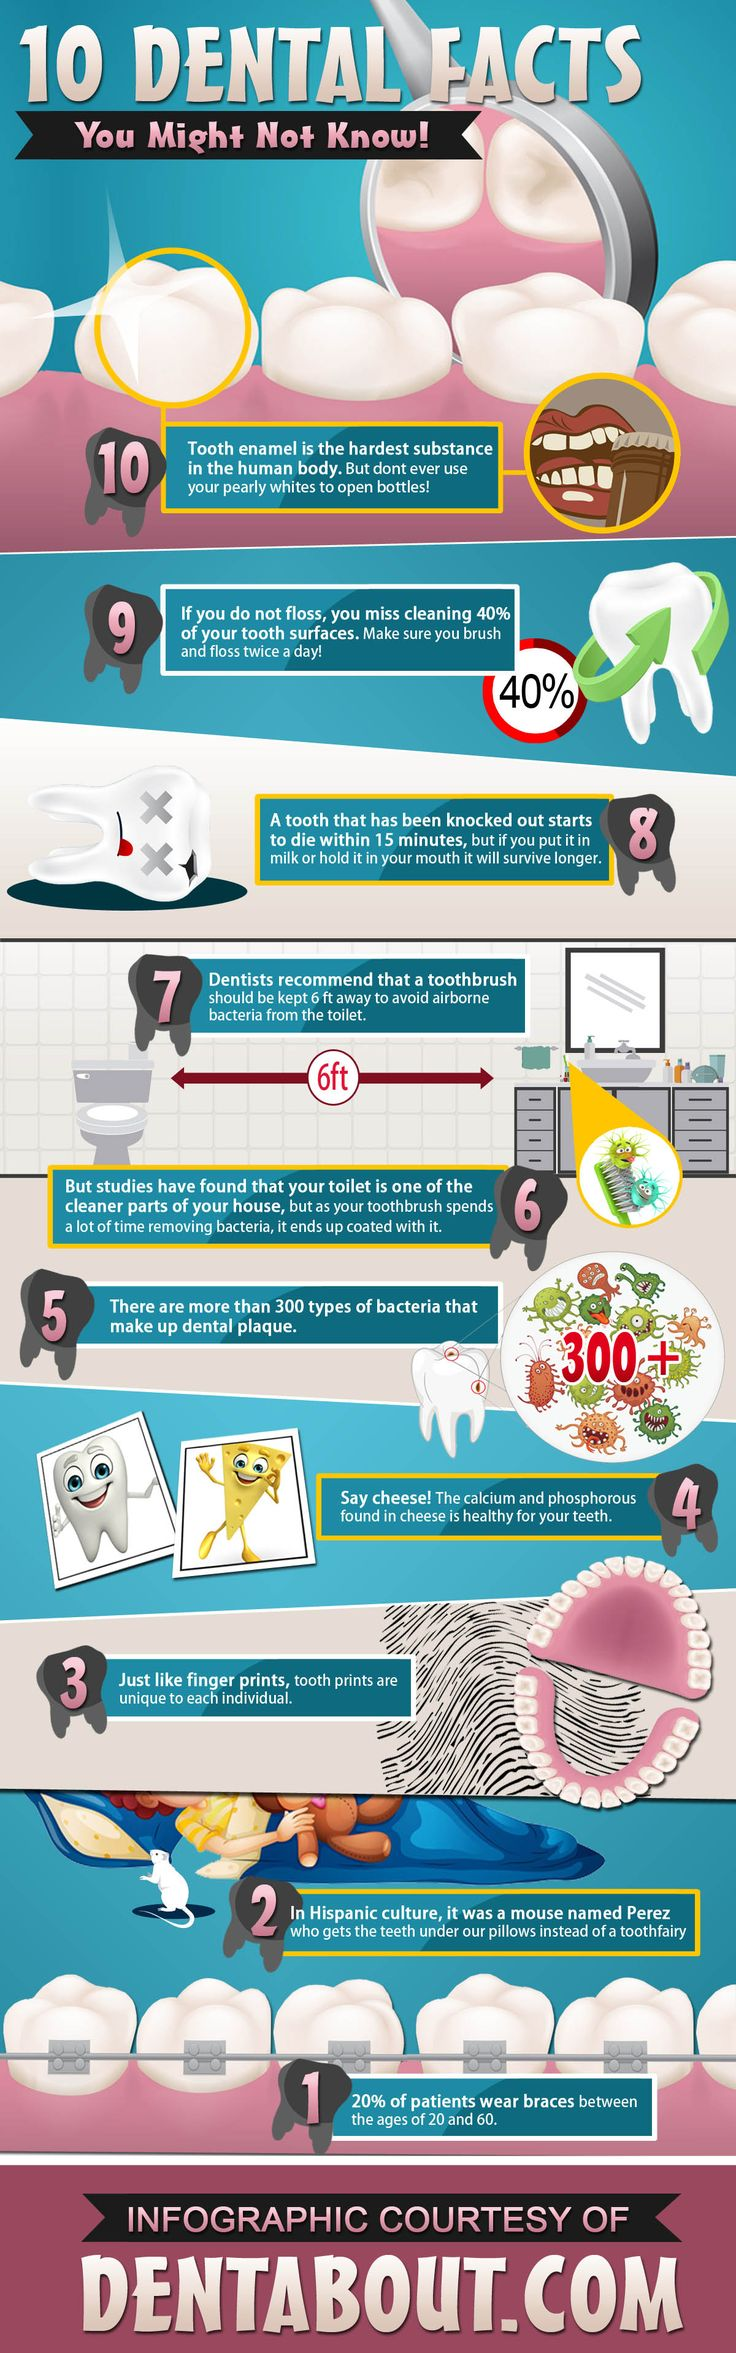 Take a look at some of these interesting dental facts. Contact our dentist for more information or to schedule an appointment at portageparkdentist.com.